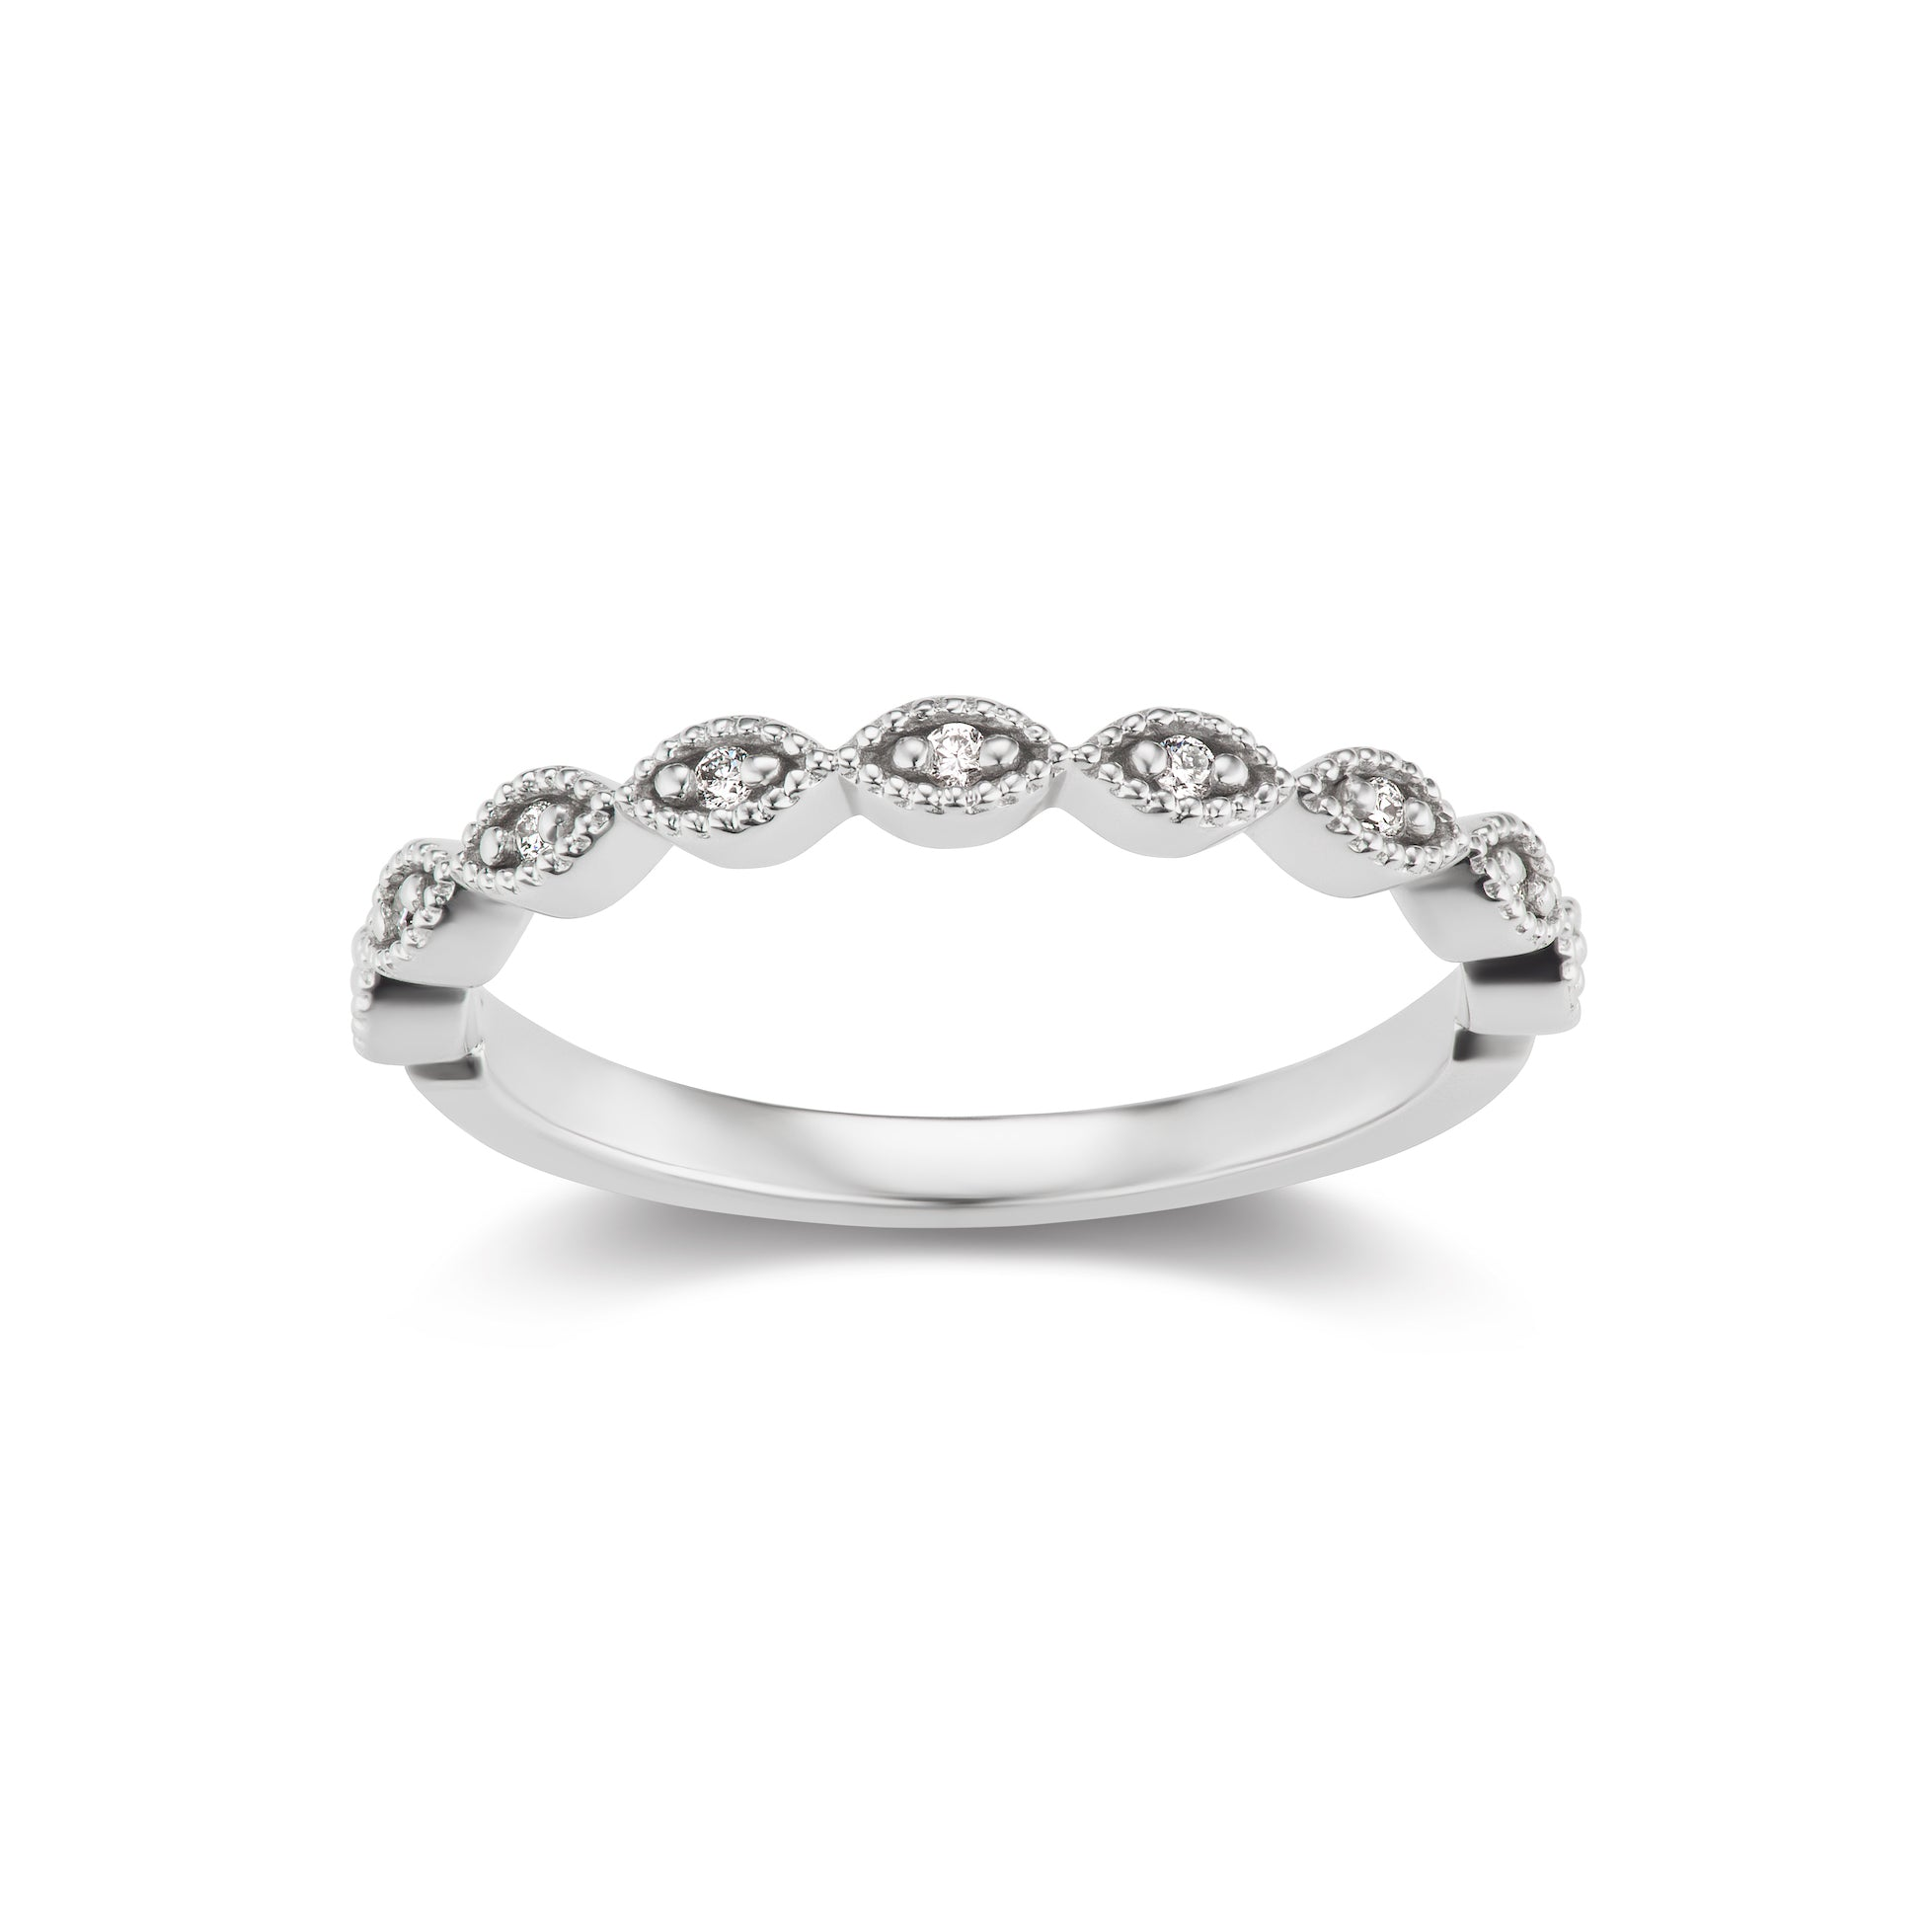 Navette Band Ring in White Gold